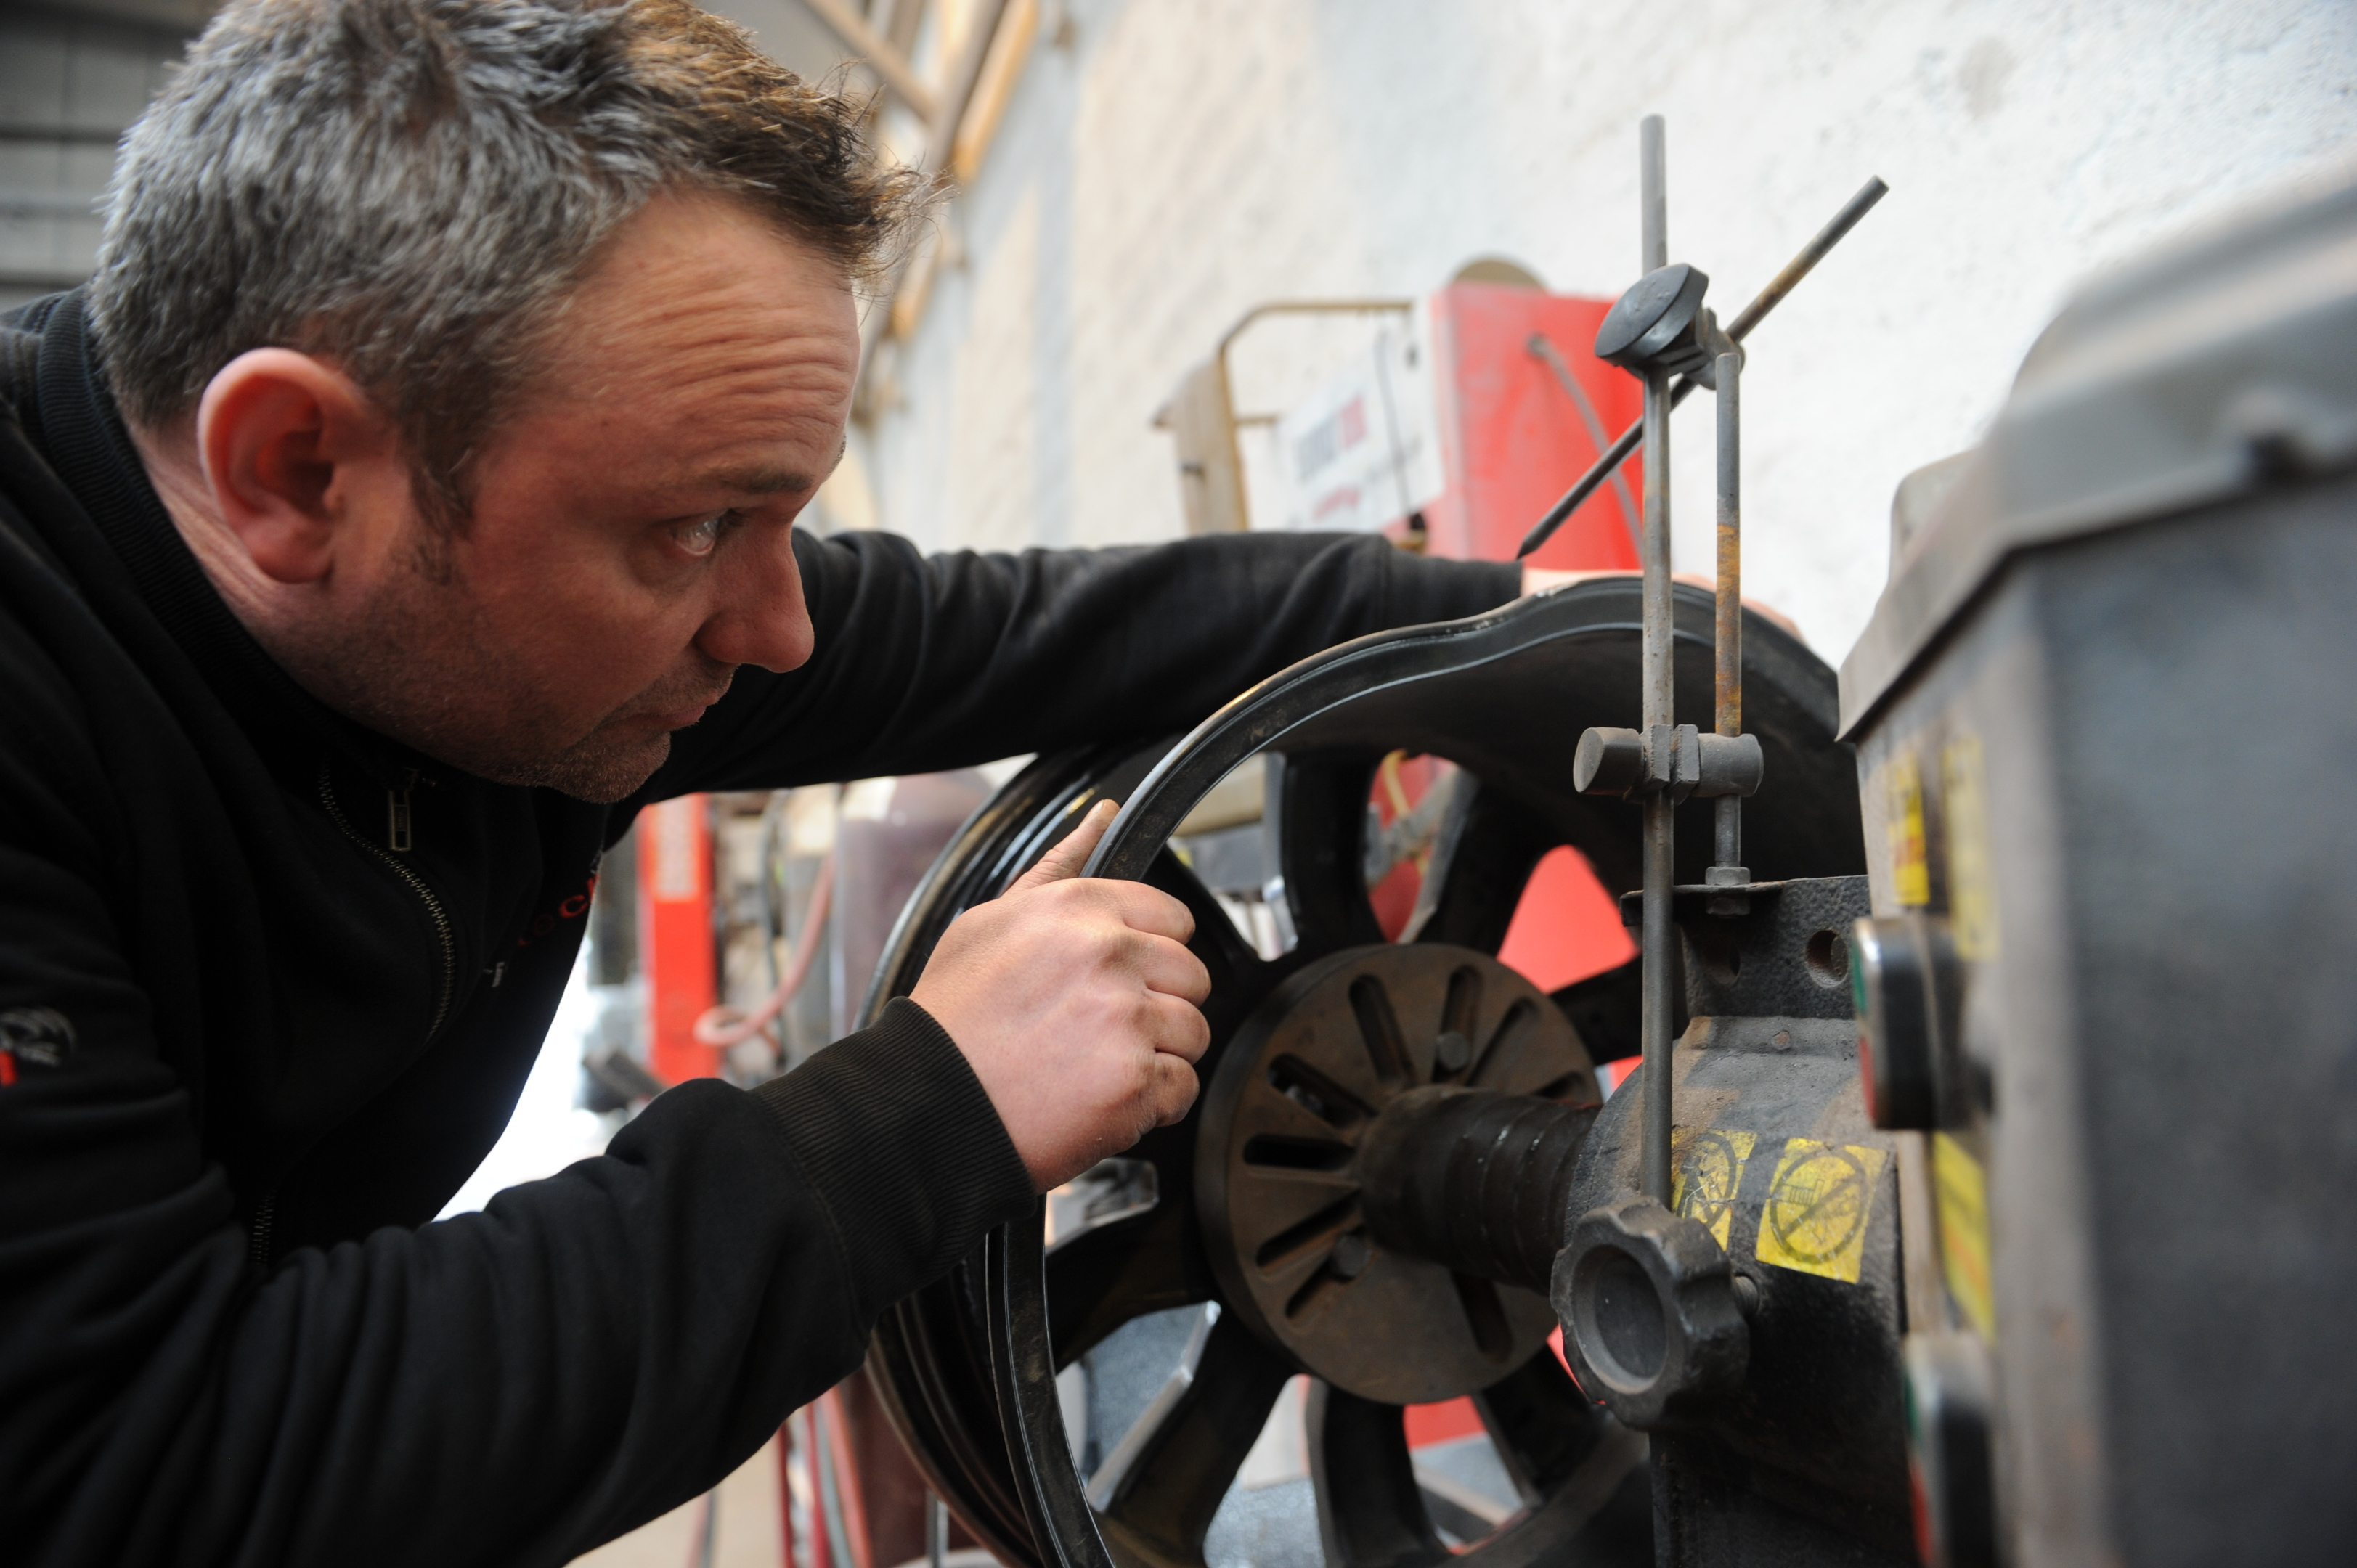 Jason Massie owns Rimtech wheel specialists in Inverness and has seen a large increase in the number of wheel repairs required as a result of pothole damage this year. Picture by Sandy McCook.